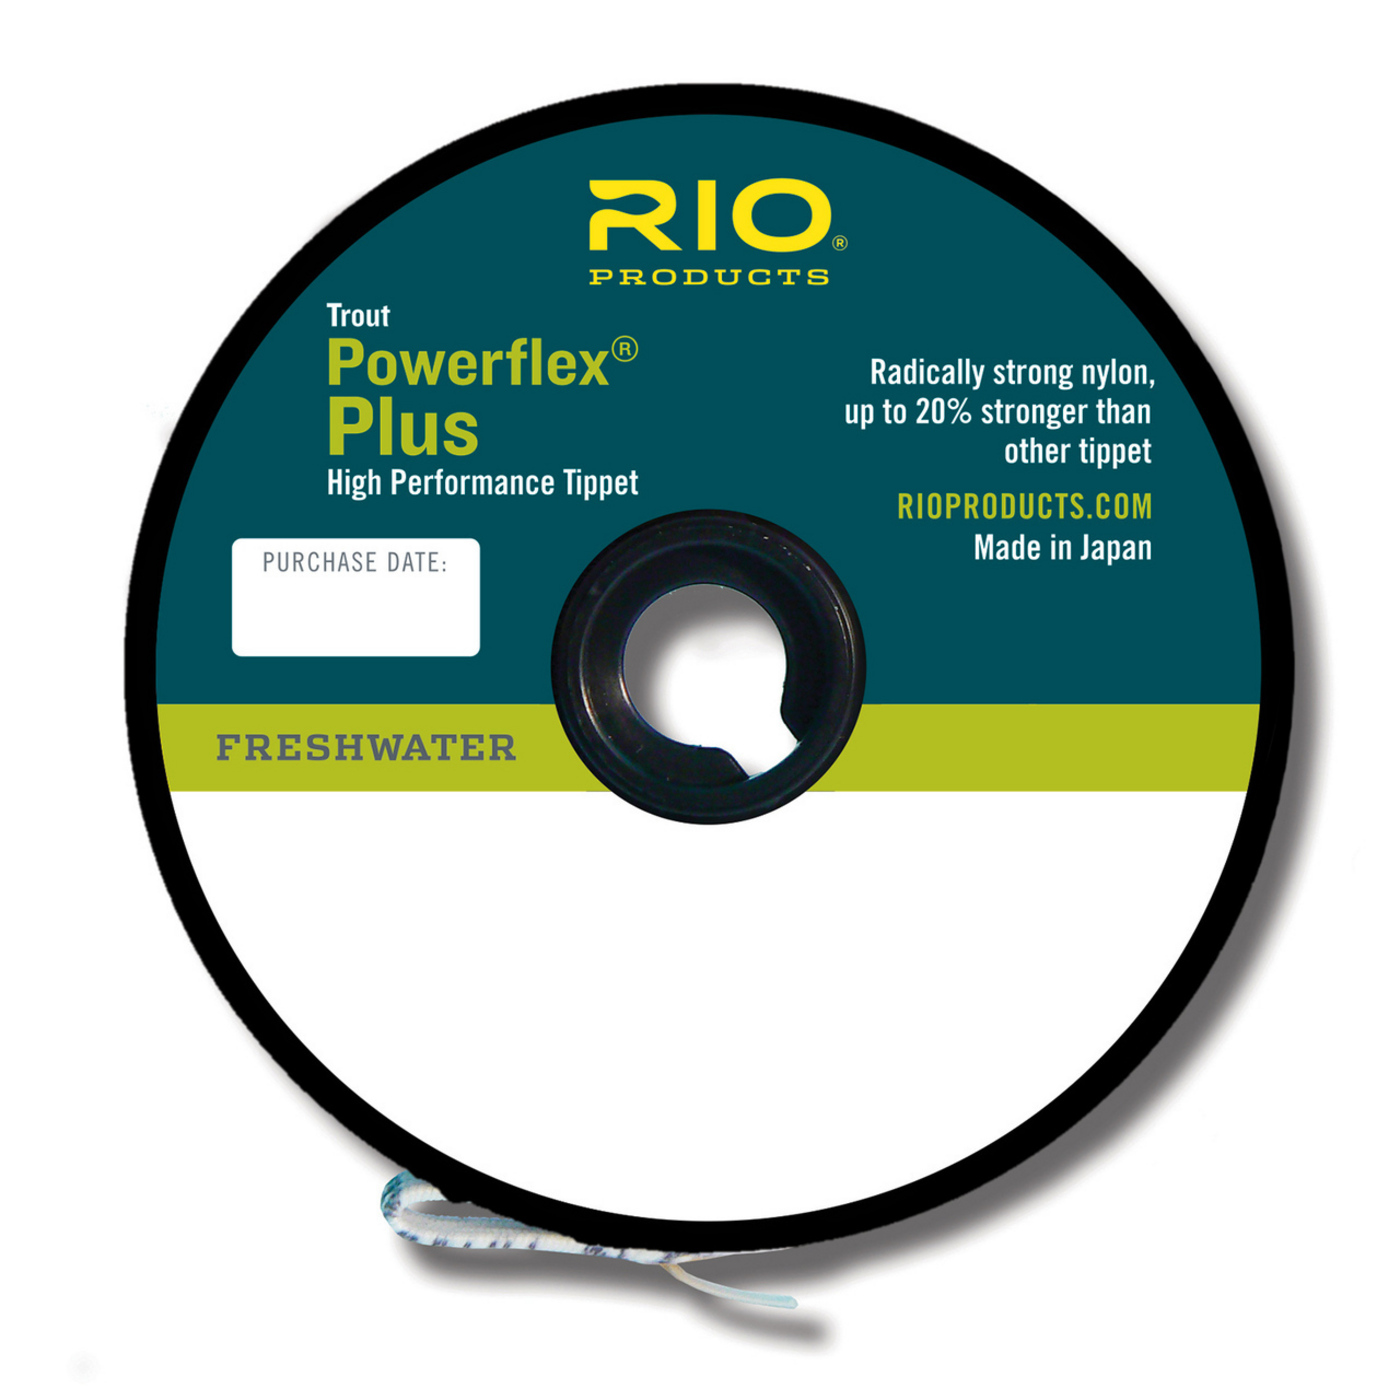 Rio Products Powerflex Plus Tippet 3X